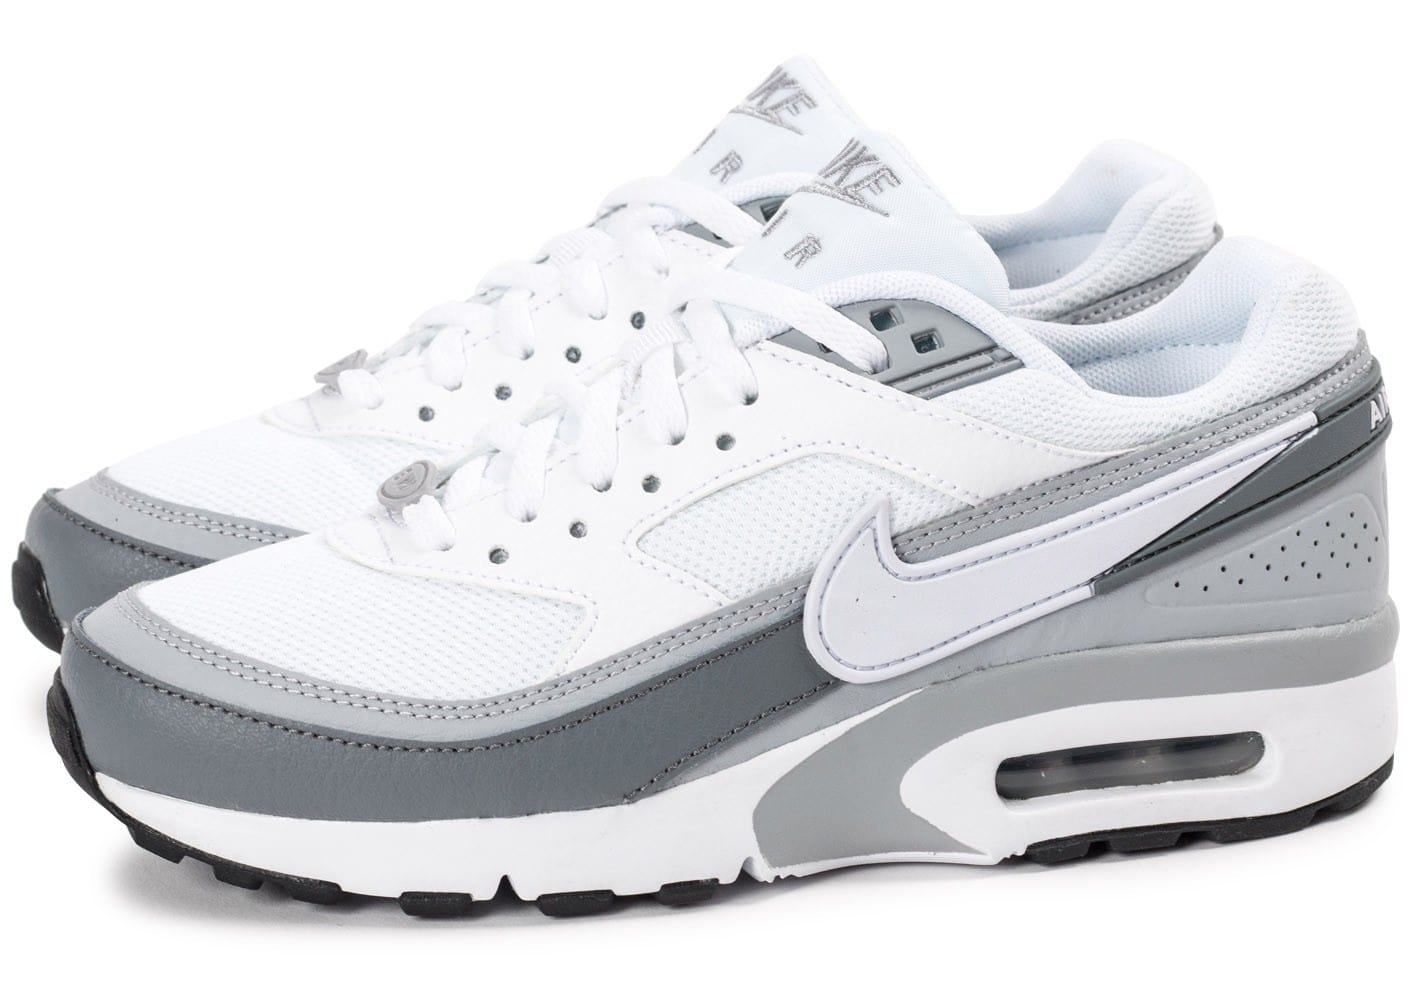 new concept f49c6 c1894 sweden homme nike air max bw 91 noir blanc nike air max bw blanc noir homme